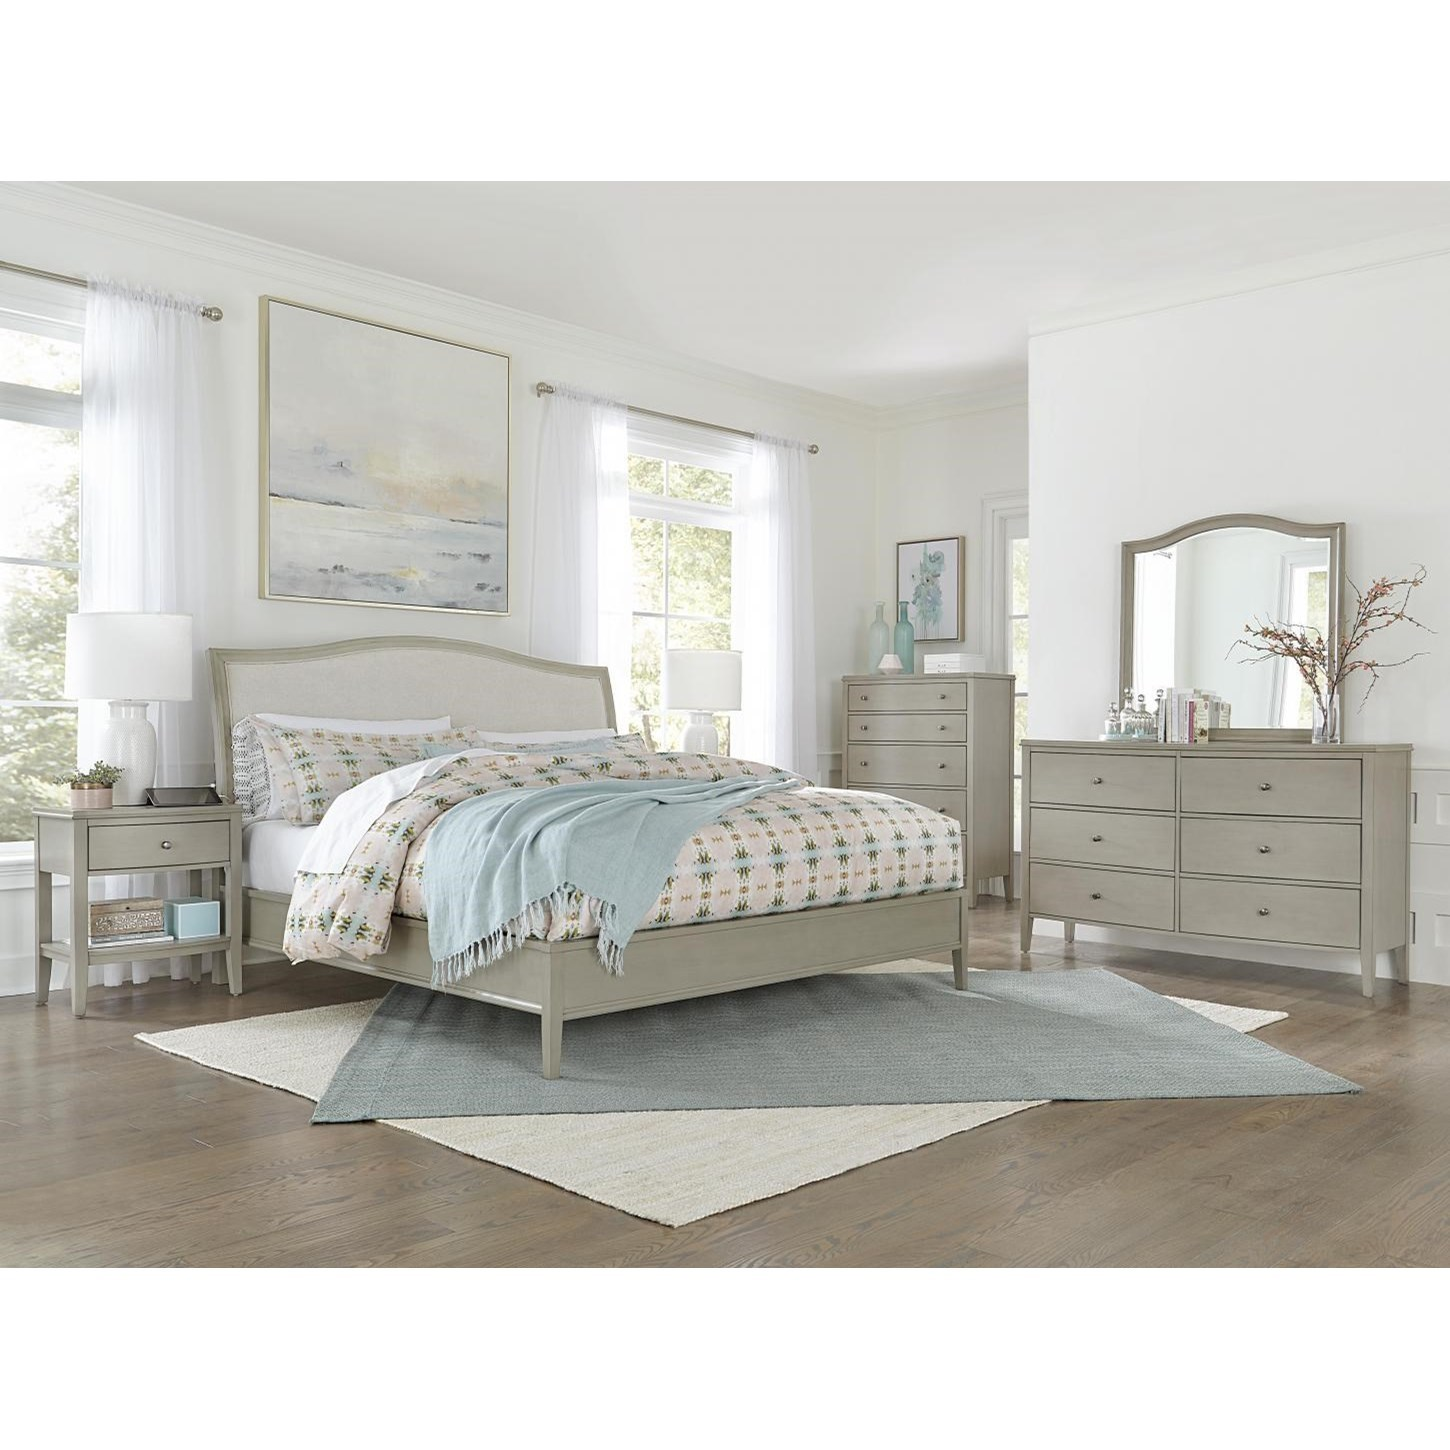 Charlotte  Full Bedroom Group  by Aspenhome at Stoney Creek Furniture